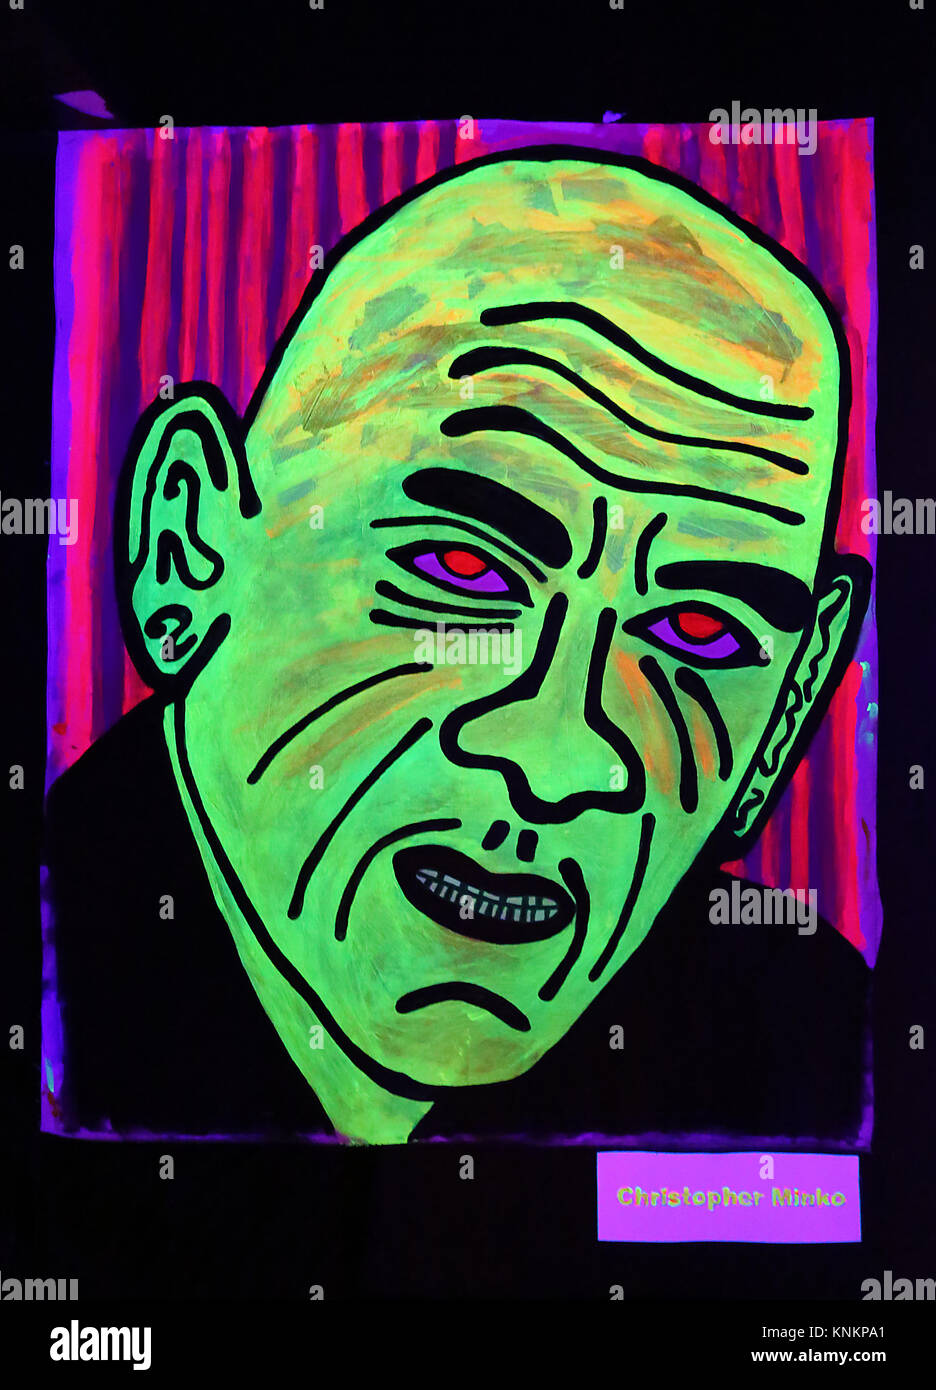 Bangkok Neon is an exhibition of noir nightlife characters by artist Chris Coles currently at Check Inn 99, Sukhumvit - Stock Image